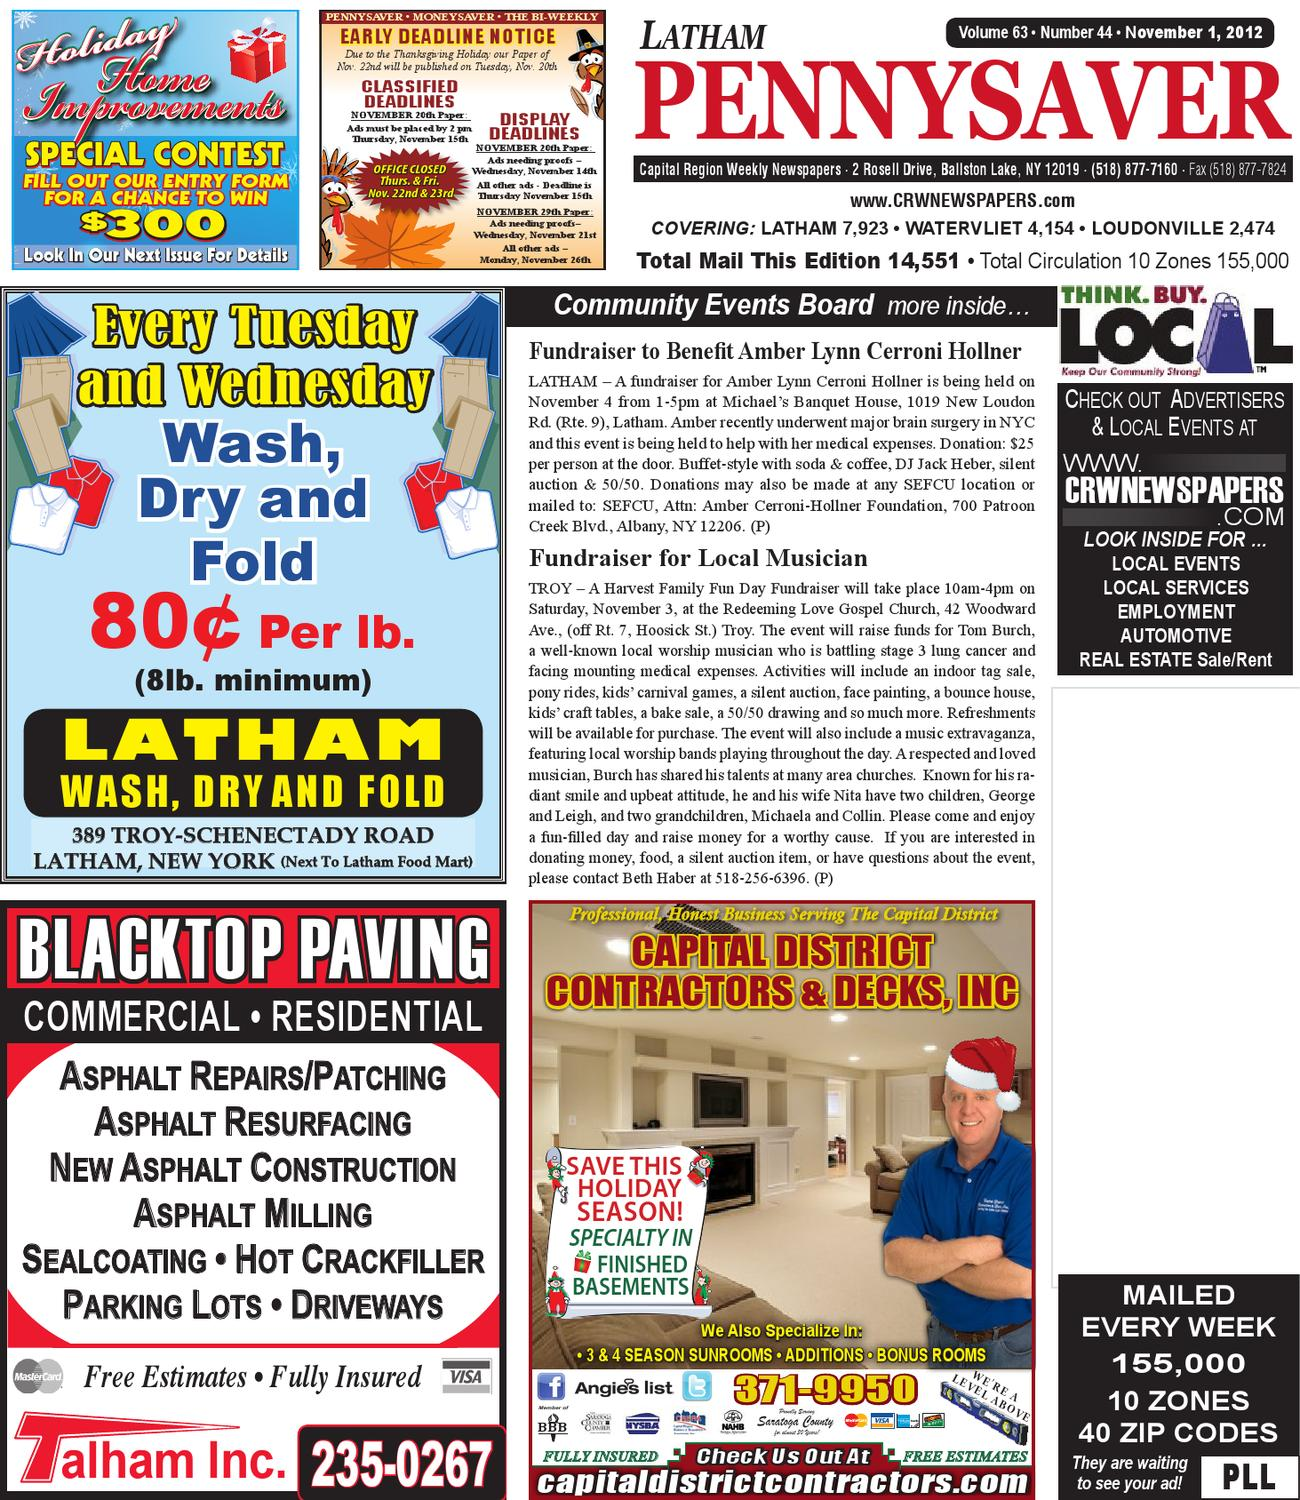 latham pennysaver by capital region weekly newspapers issuu